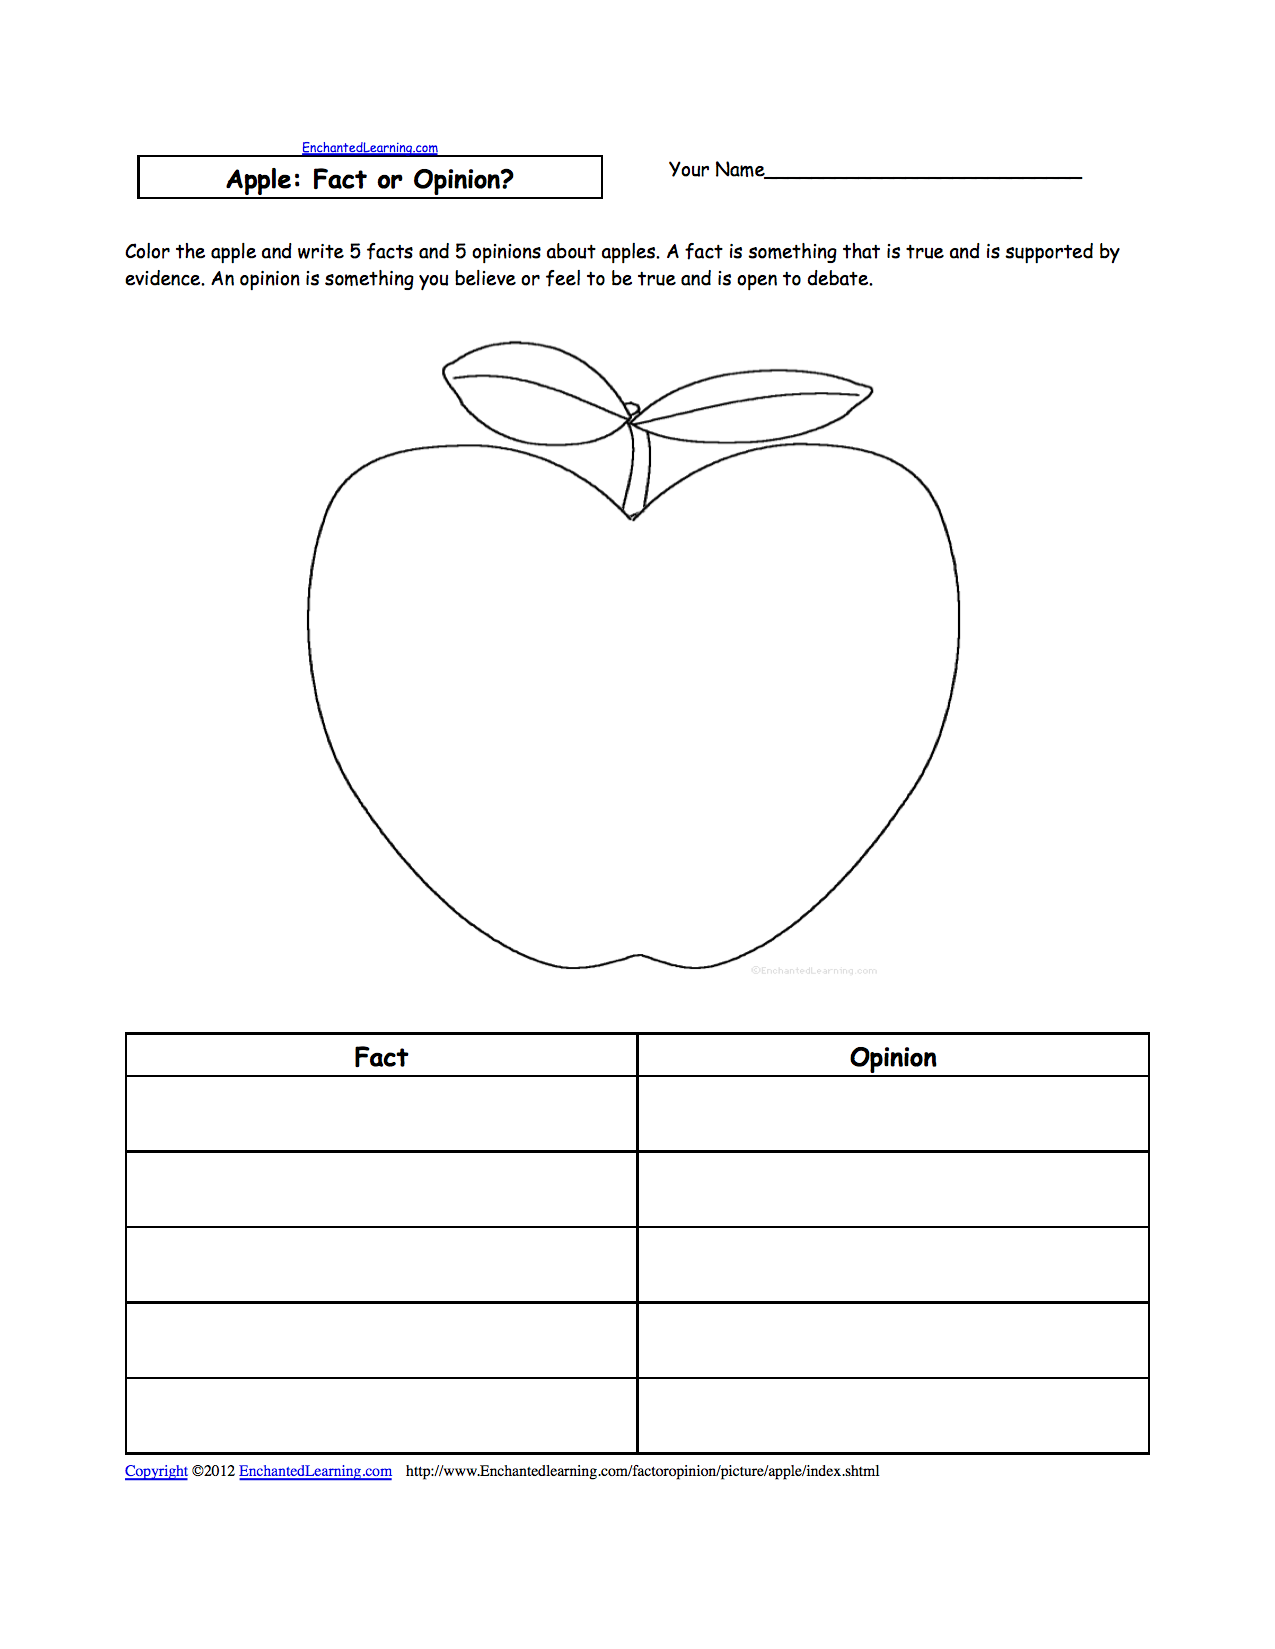 Apple Life Cycle Coloring Page Apple Fact or Opinion